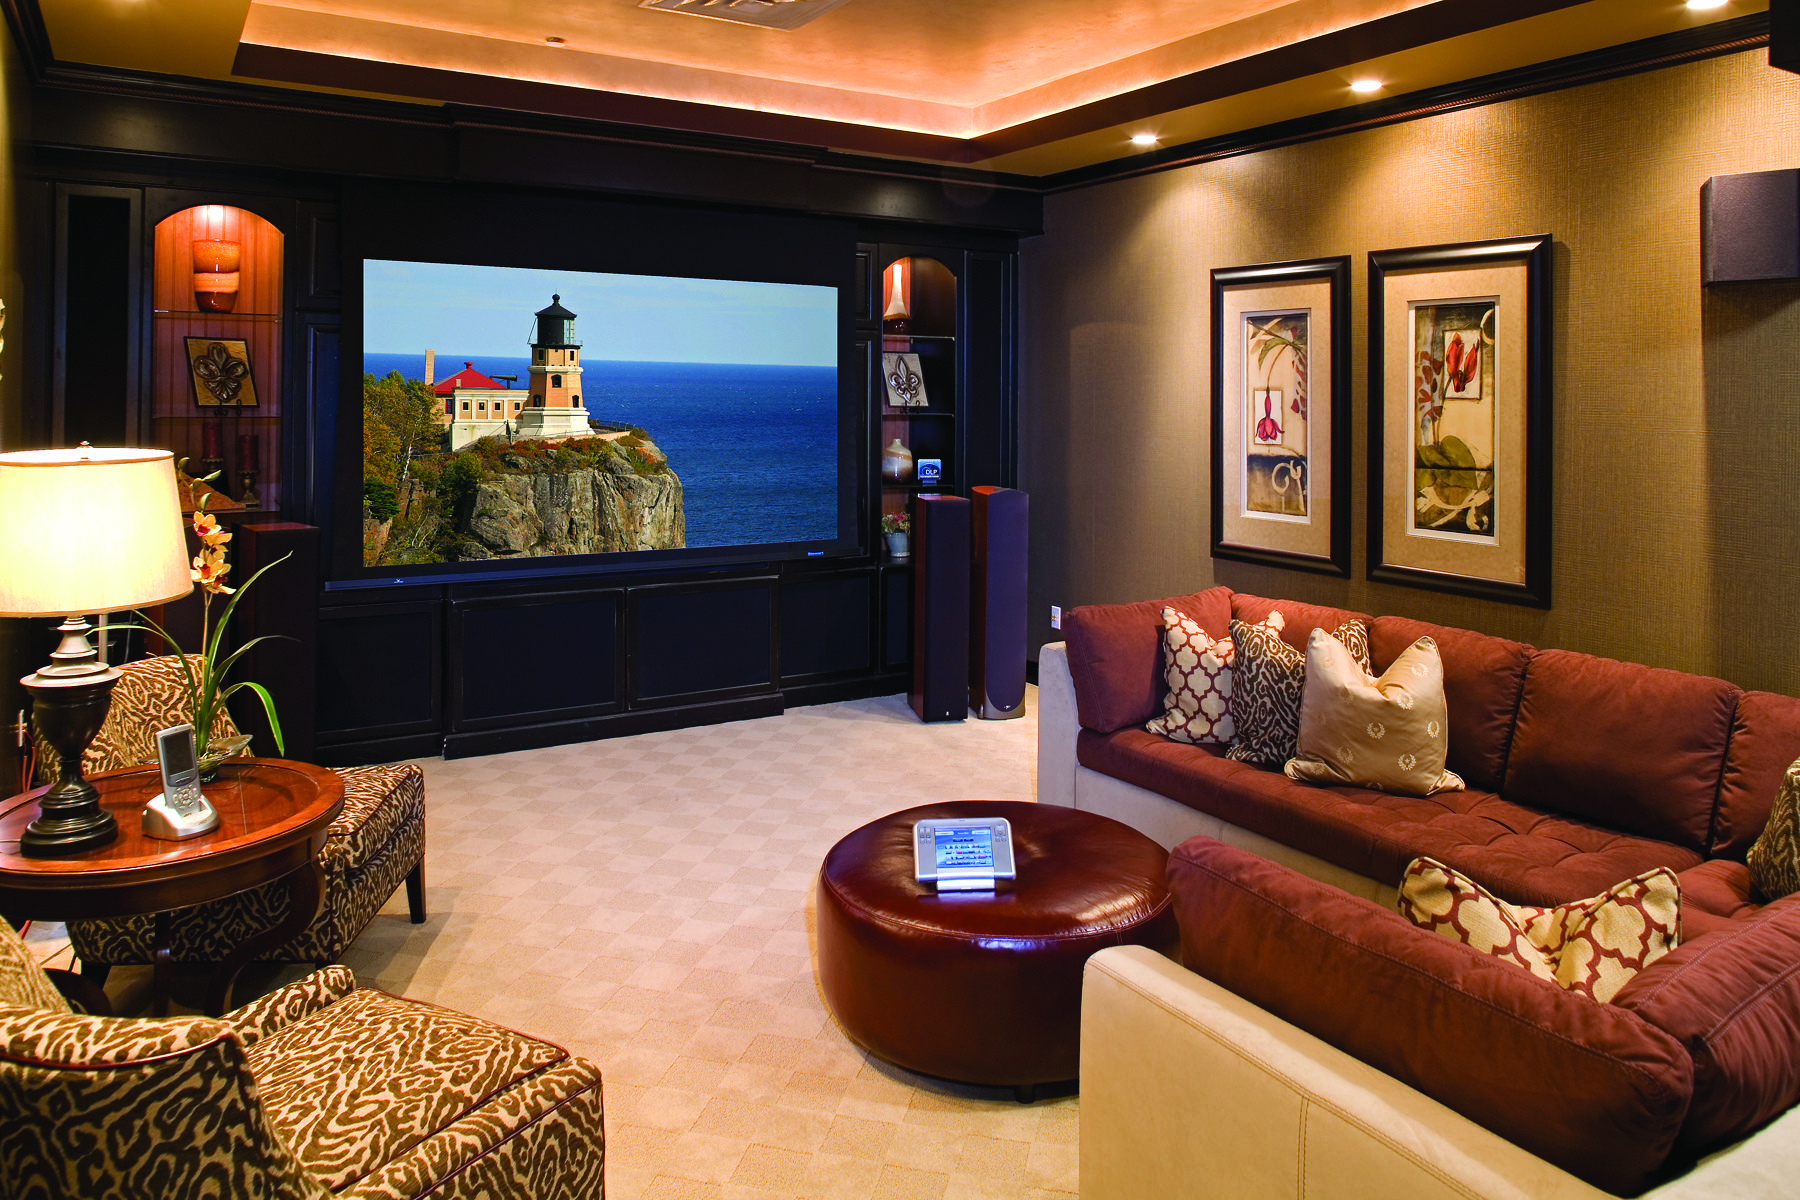 Basement entertainment room - Entertainment Remodel Your Basement Into A Home Theater